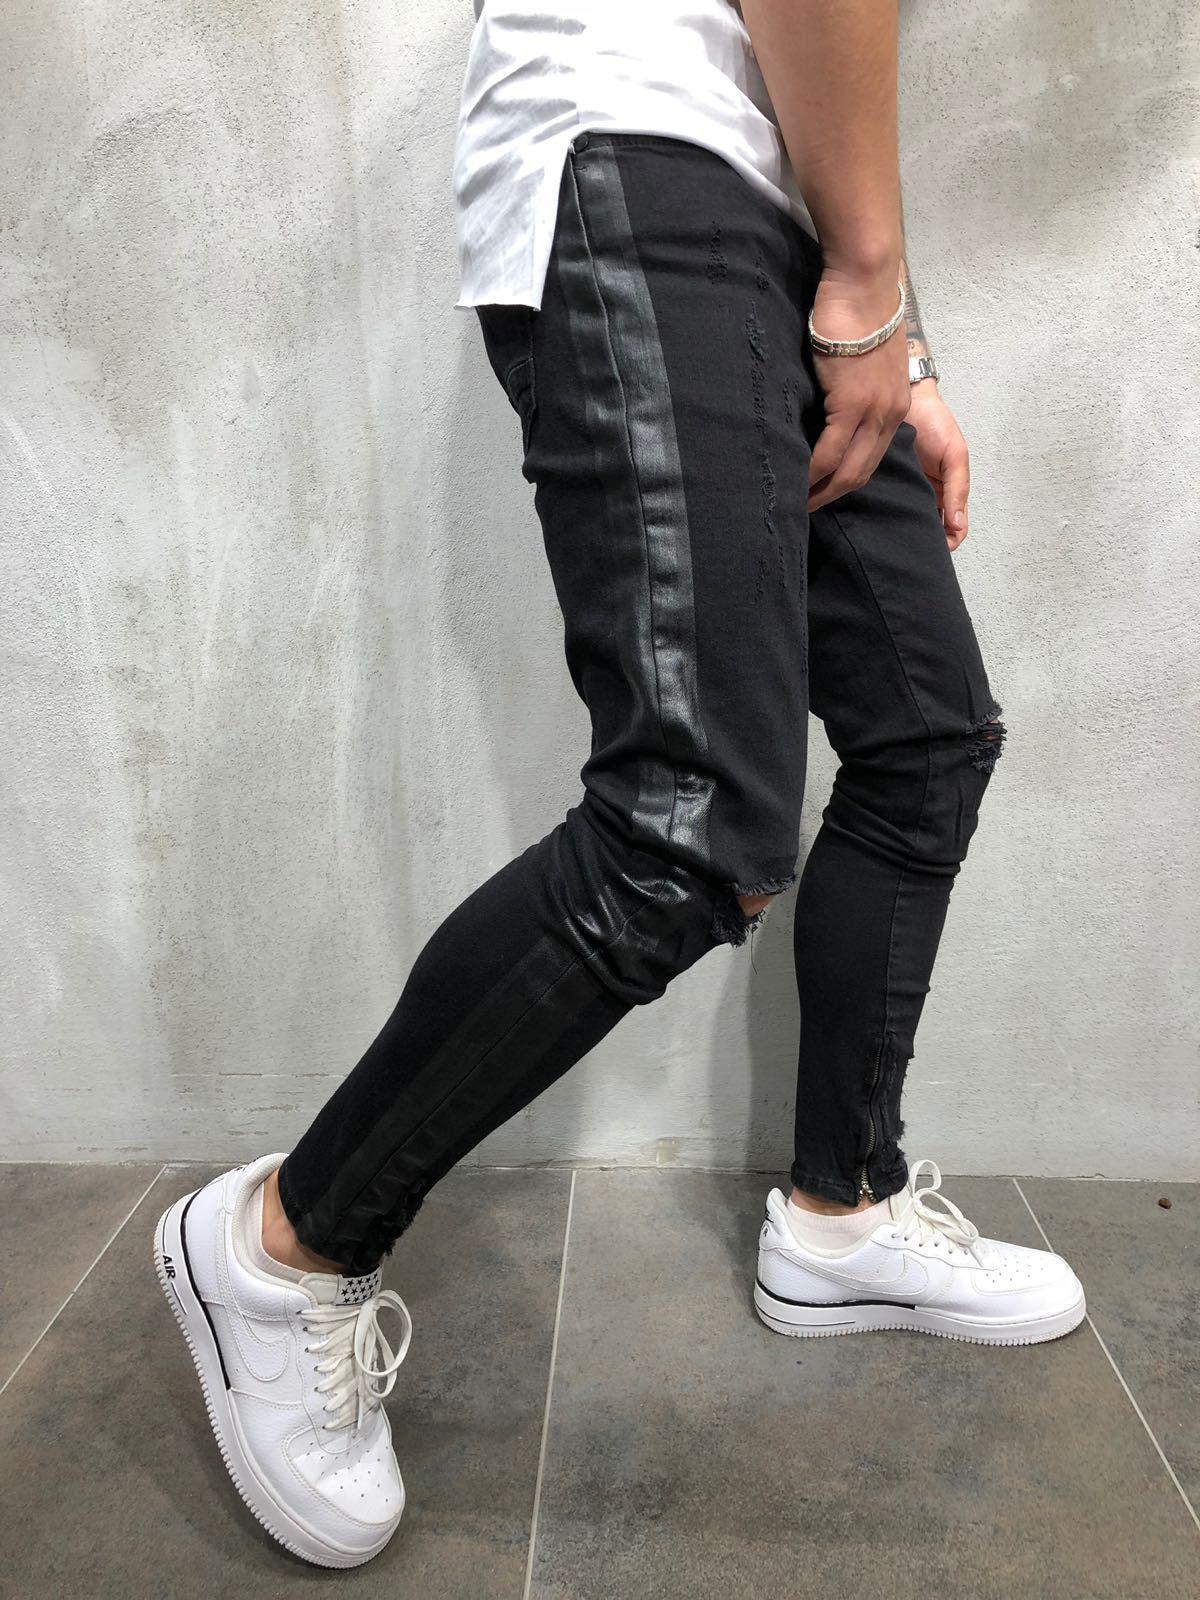 e0d94fb1 Ankle Zip Black Side Striped Jeans . Go for the kill wearing this ankle zip  jeans & look uber cool! . . . . #skinnyfit #MensWear #casualstyle